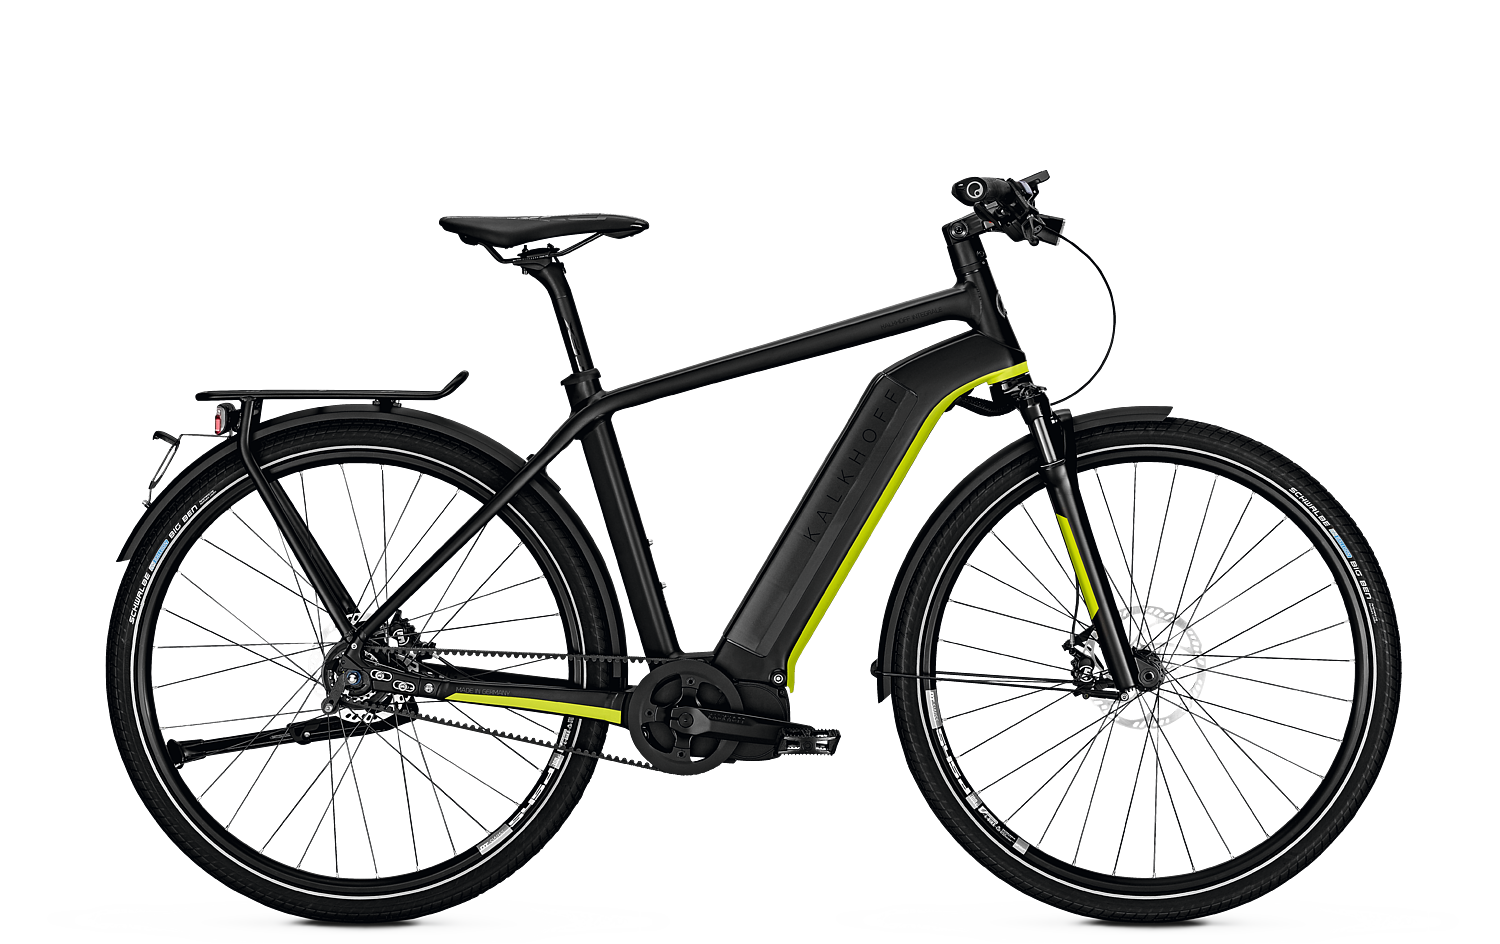 e bike kalkhoff integrale i11 speed 11g 17 ah herren 28 45 km h freilauf magicblack limegreen. Black Bedroom Furniture Sets. Home Design Ideas